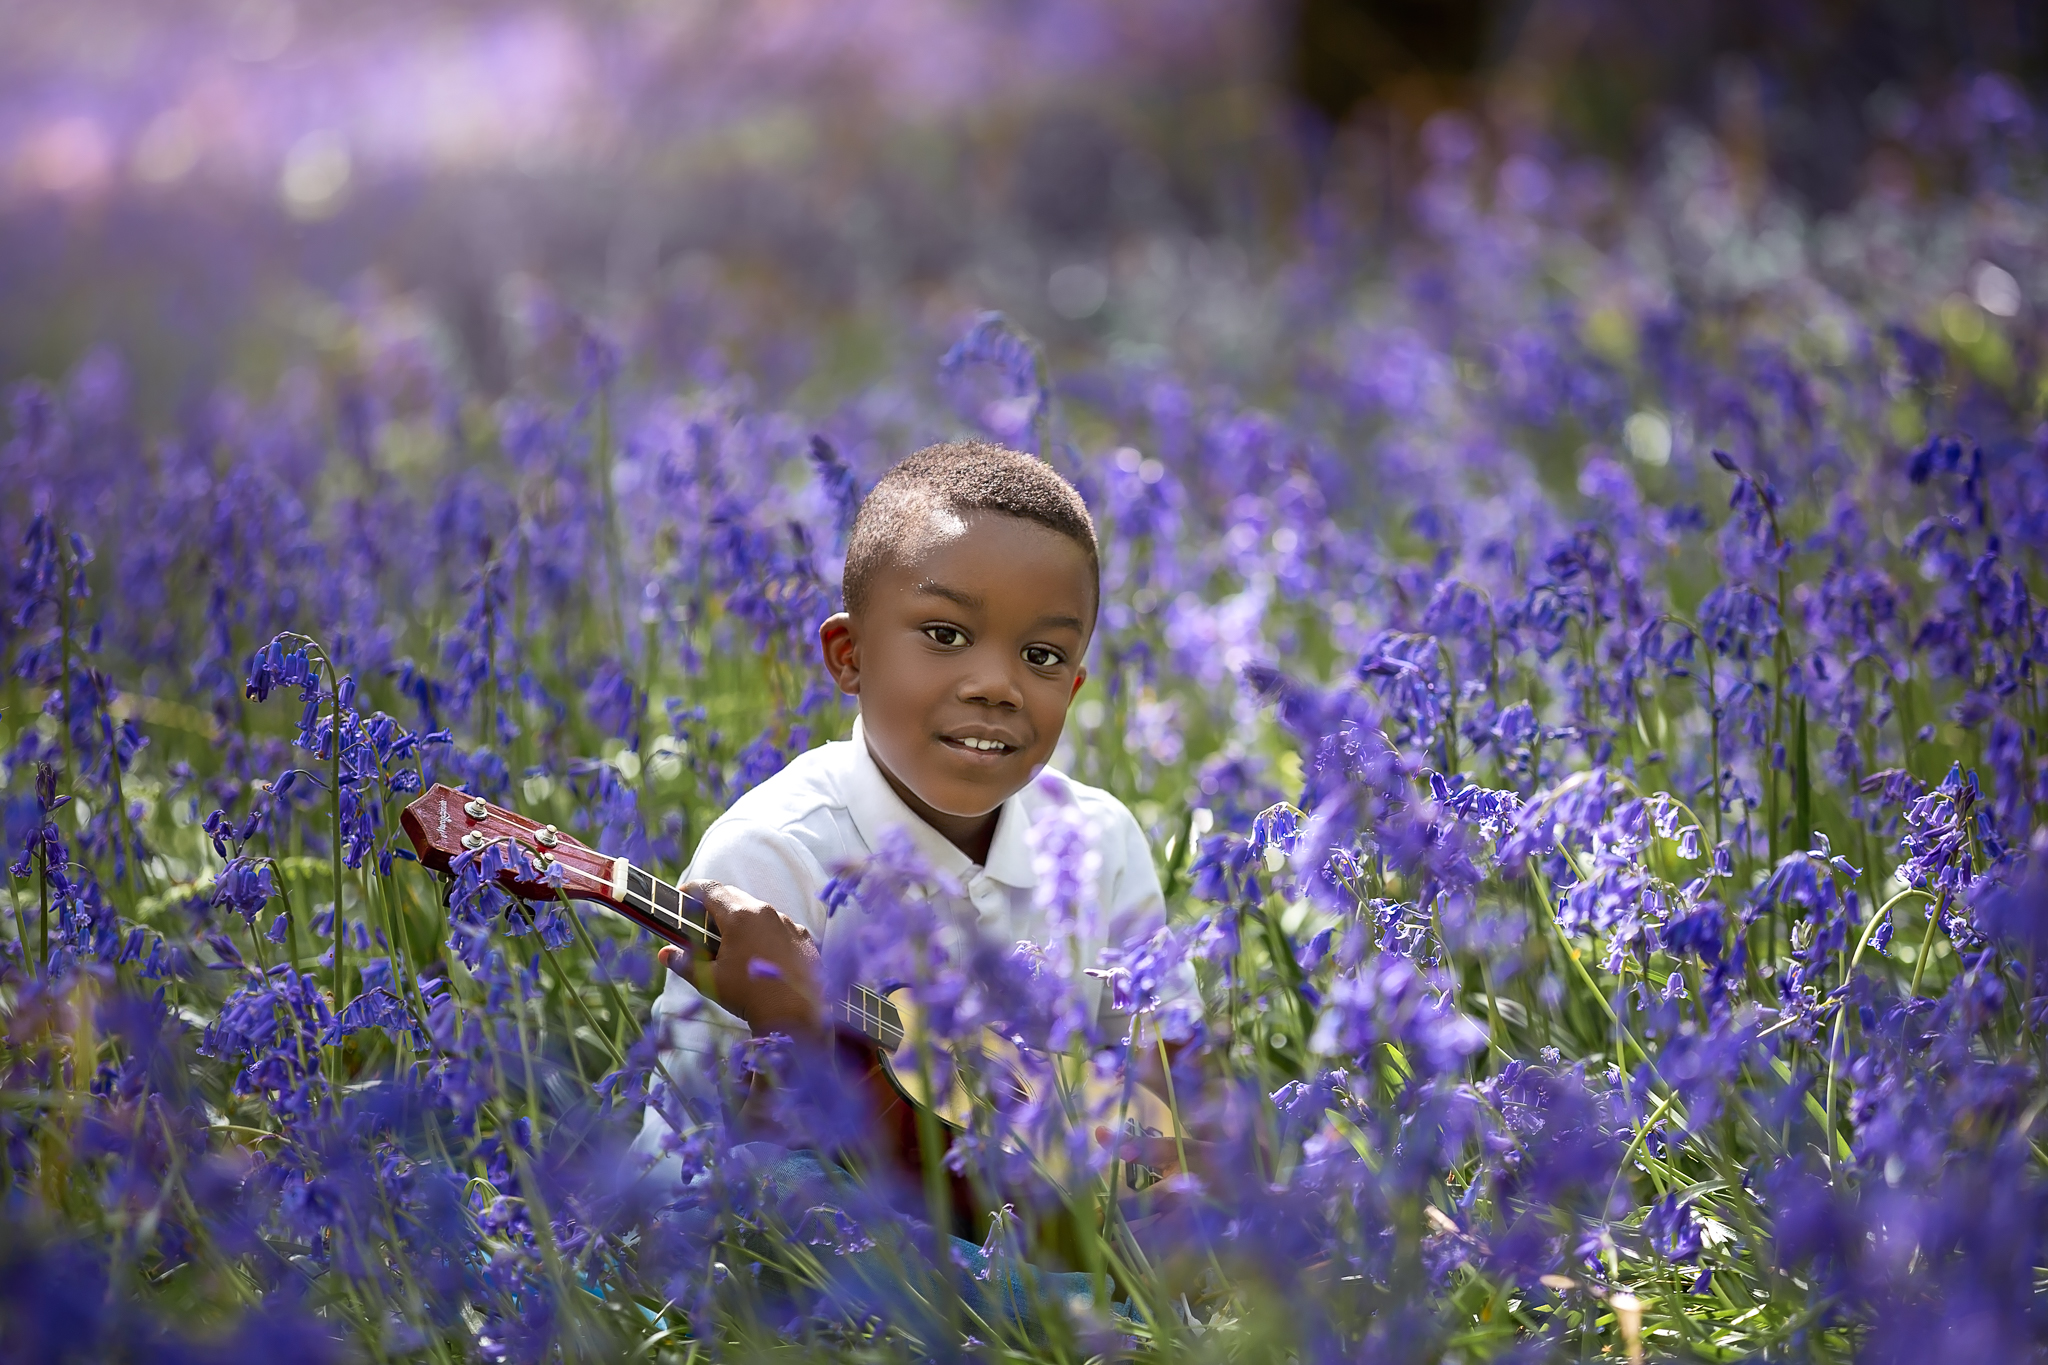 Child photography Leeds, York, Harrogare, Bradford: little boy with a guitar in a bluebell wood